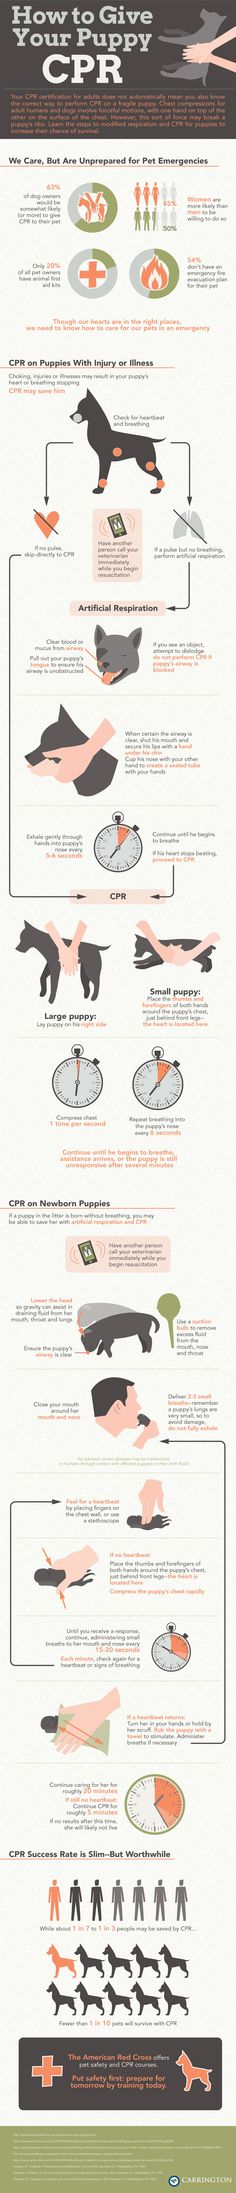 How to Do Puppy CPR Rescue - All Pet News